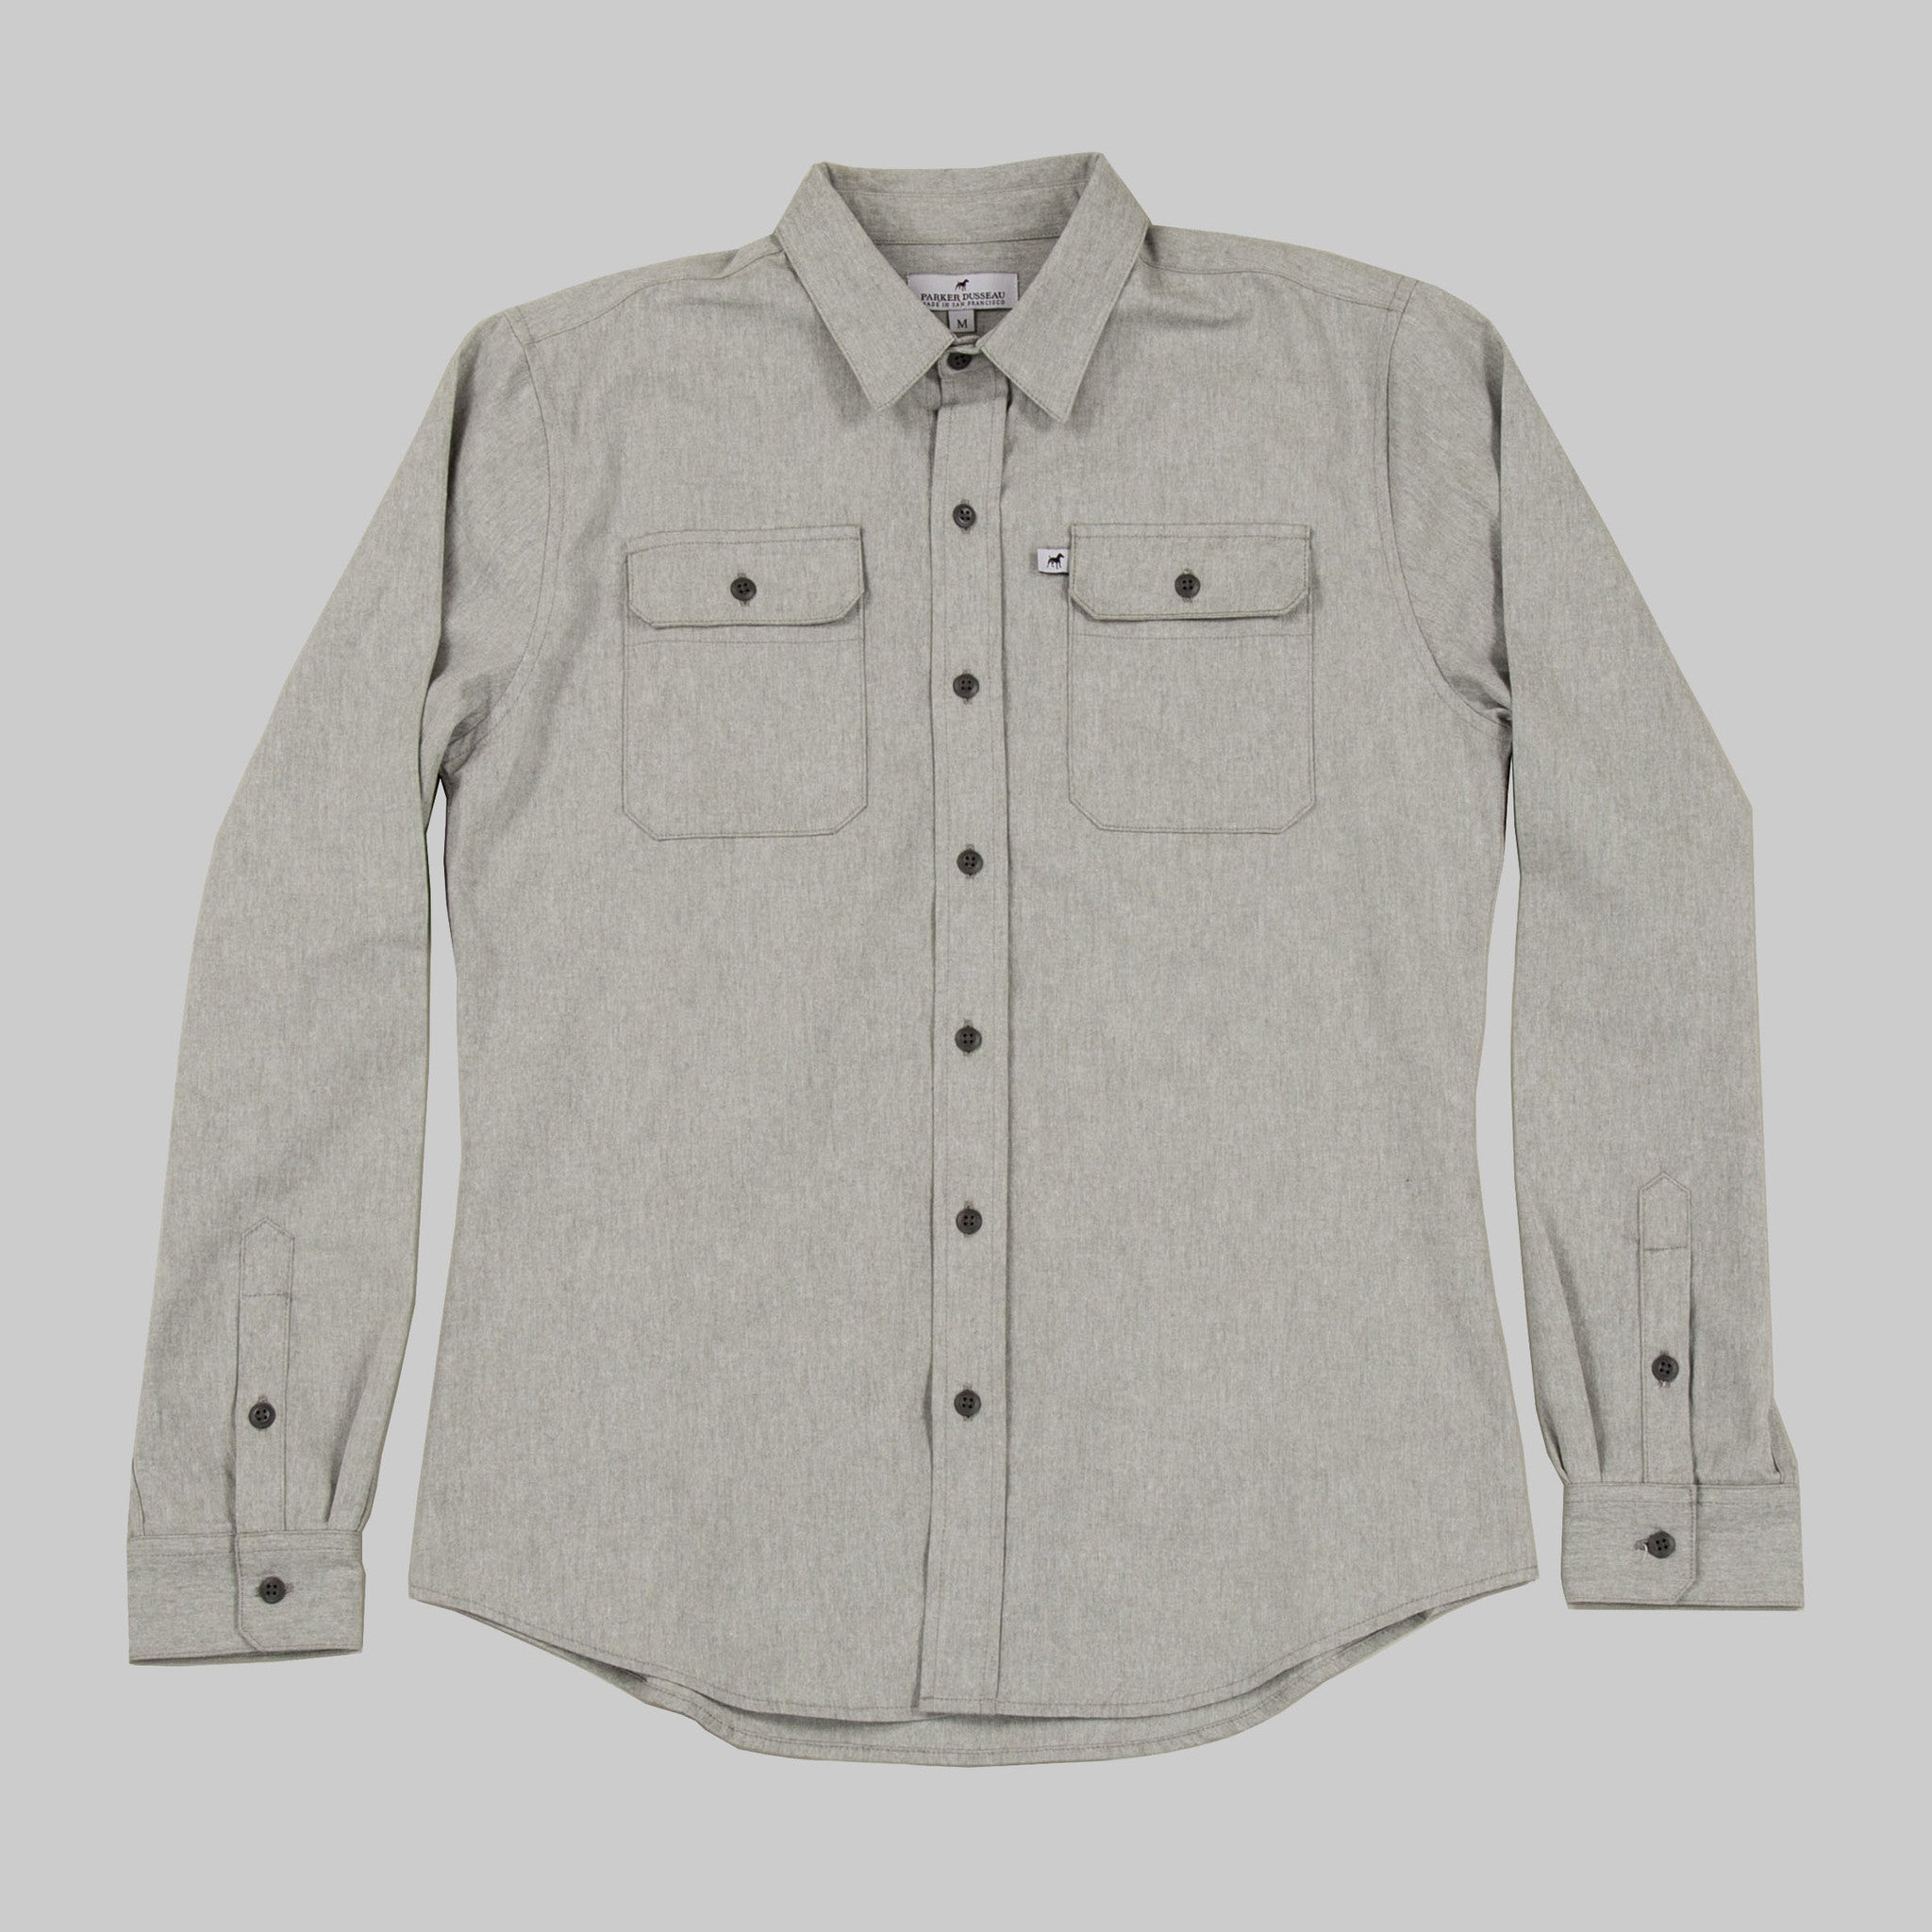 Classic Work Shirt - Sage Work Shirt- Parker Dusseau : Functional Menswear Essentials for the Always Ready Lifestyle. Based in San Francisco, California